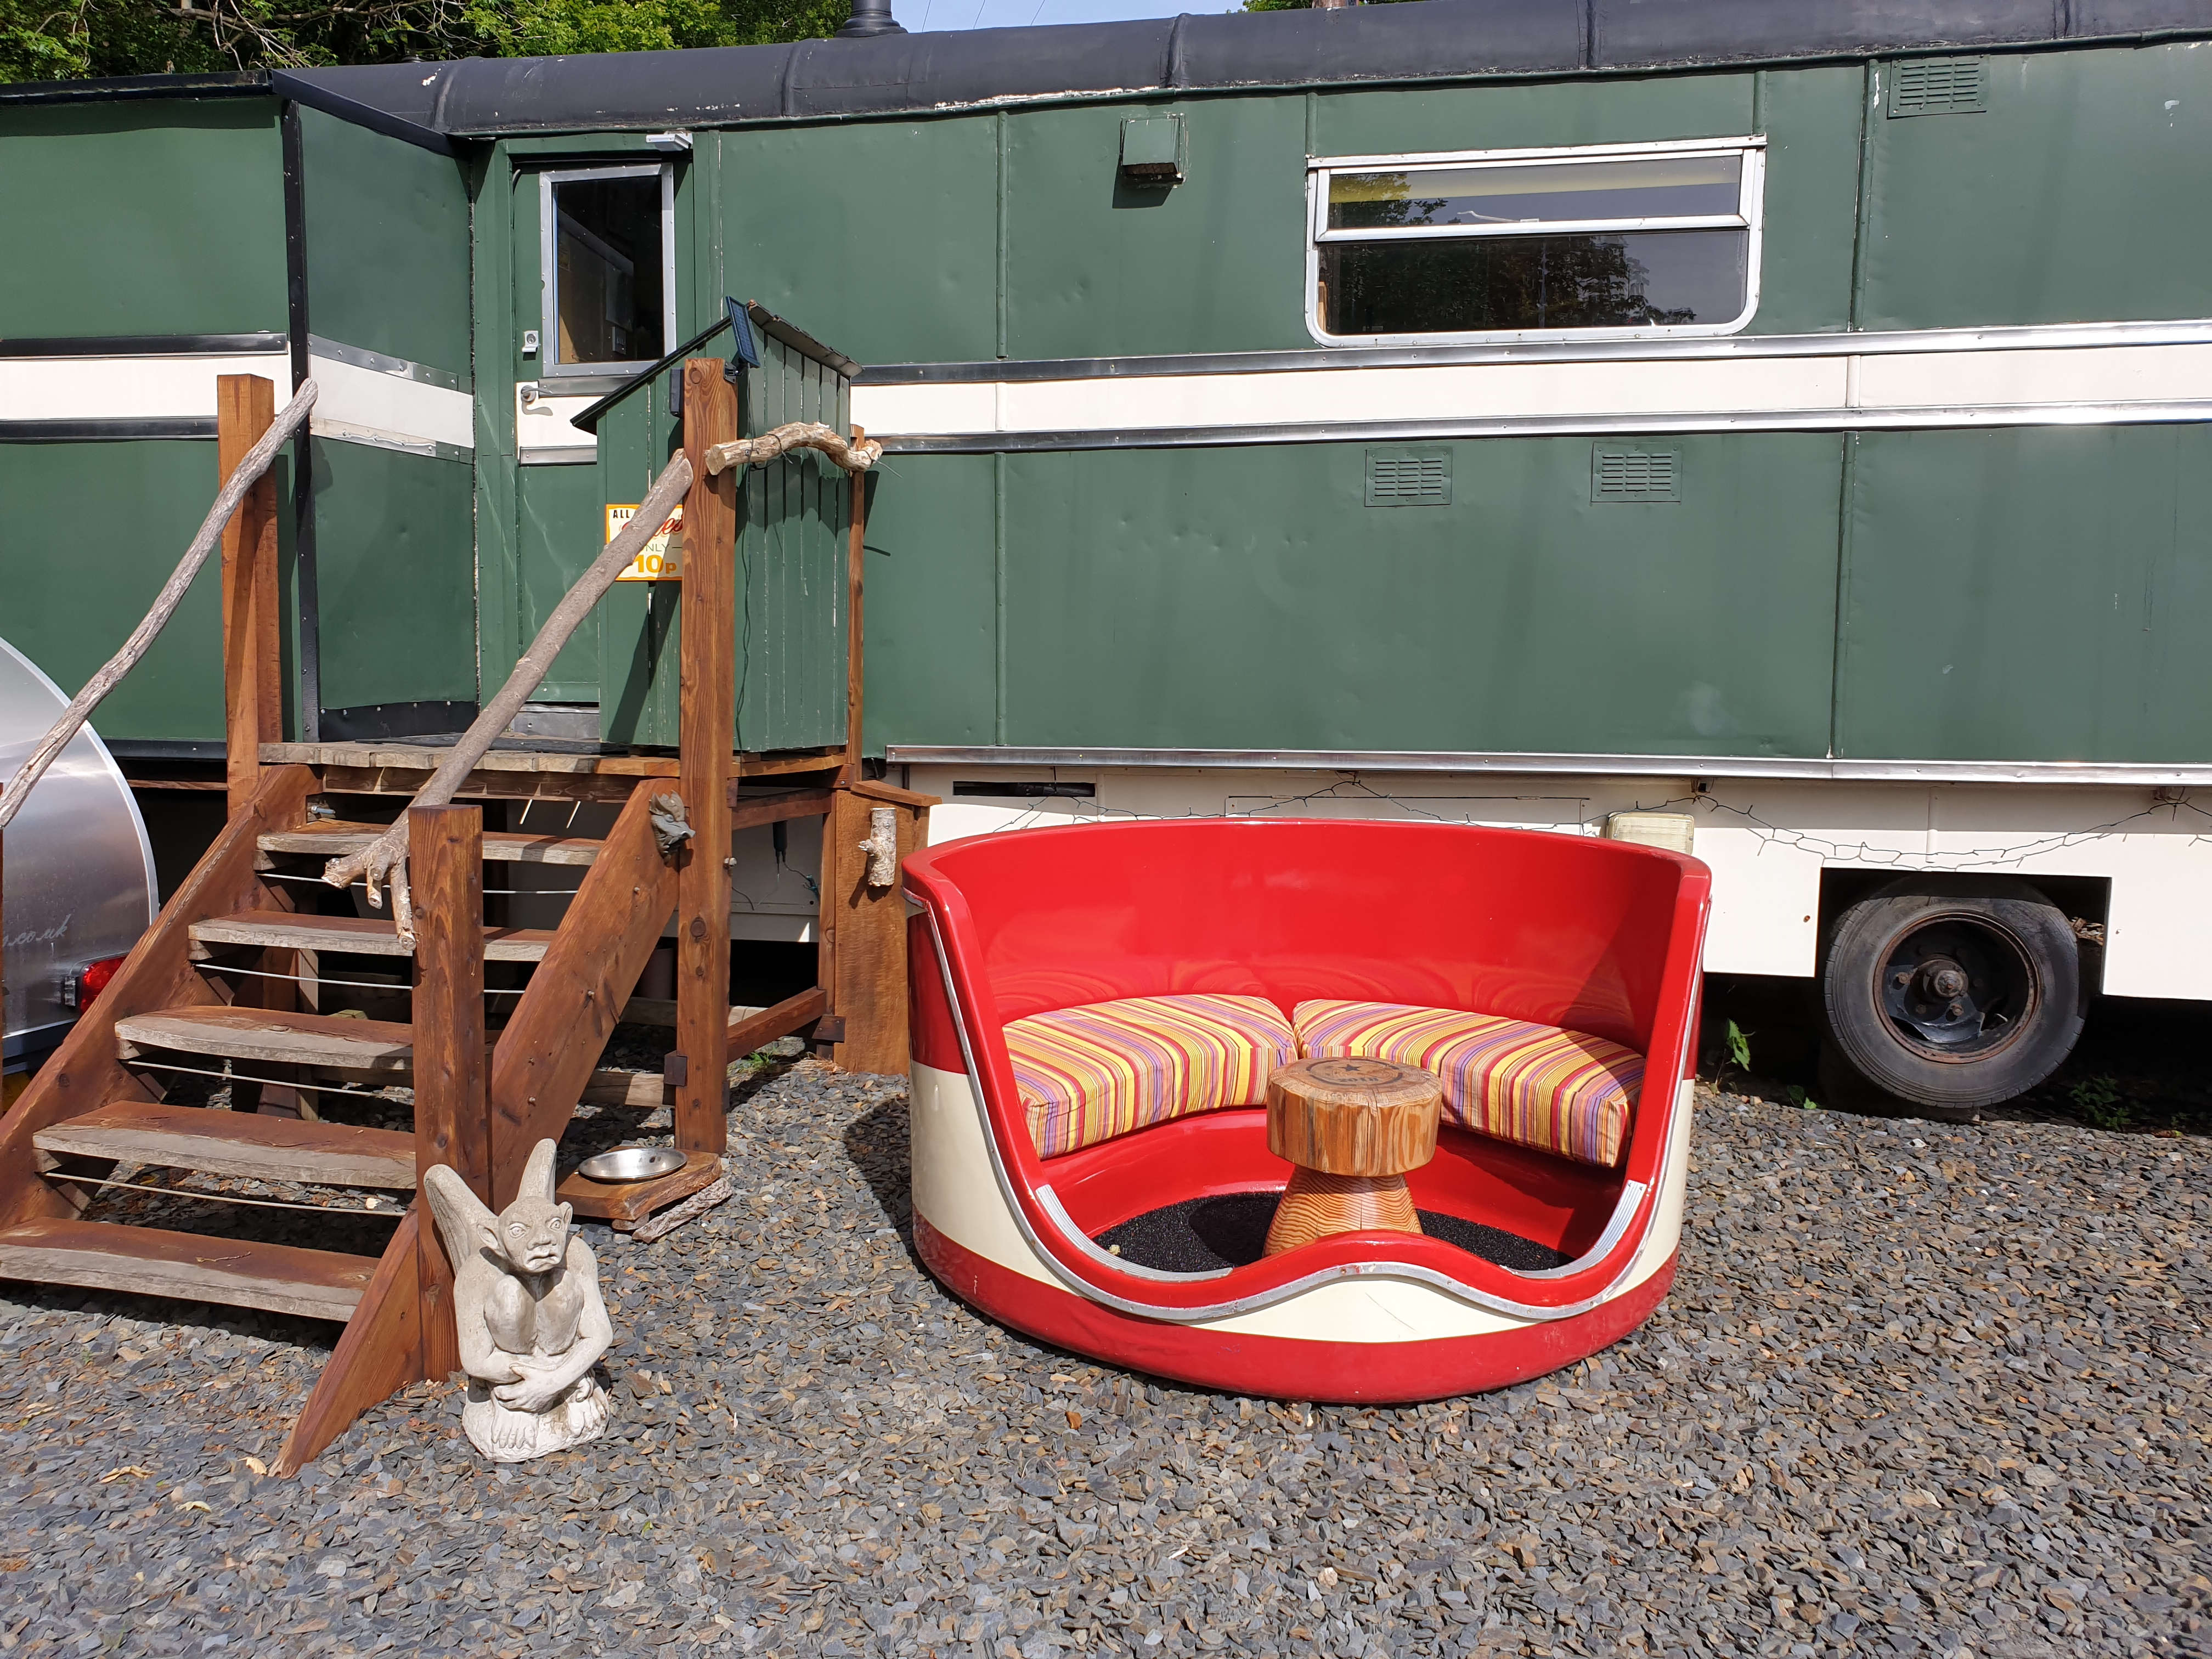 The Waltzer Chair